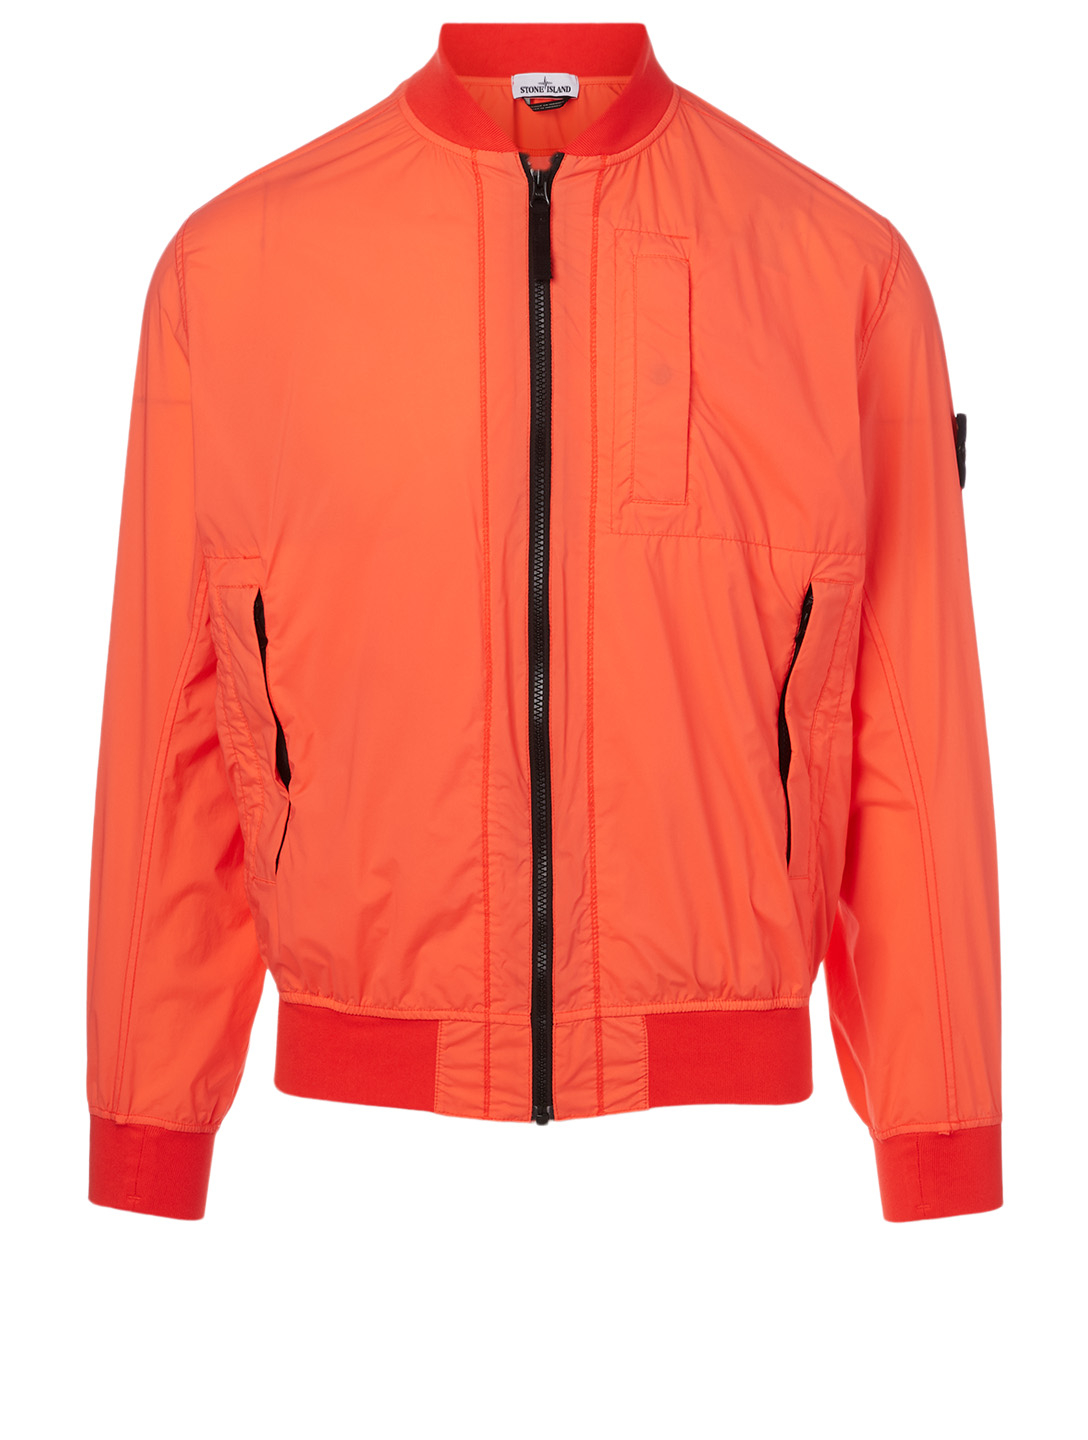 STONE ISLAND Nylon Packable Jacket Men's Orange